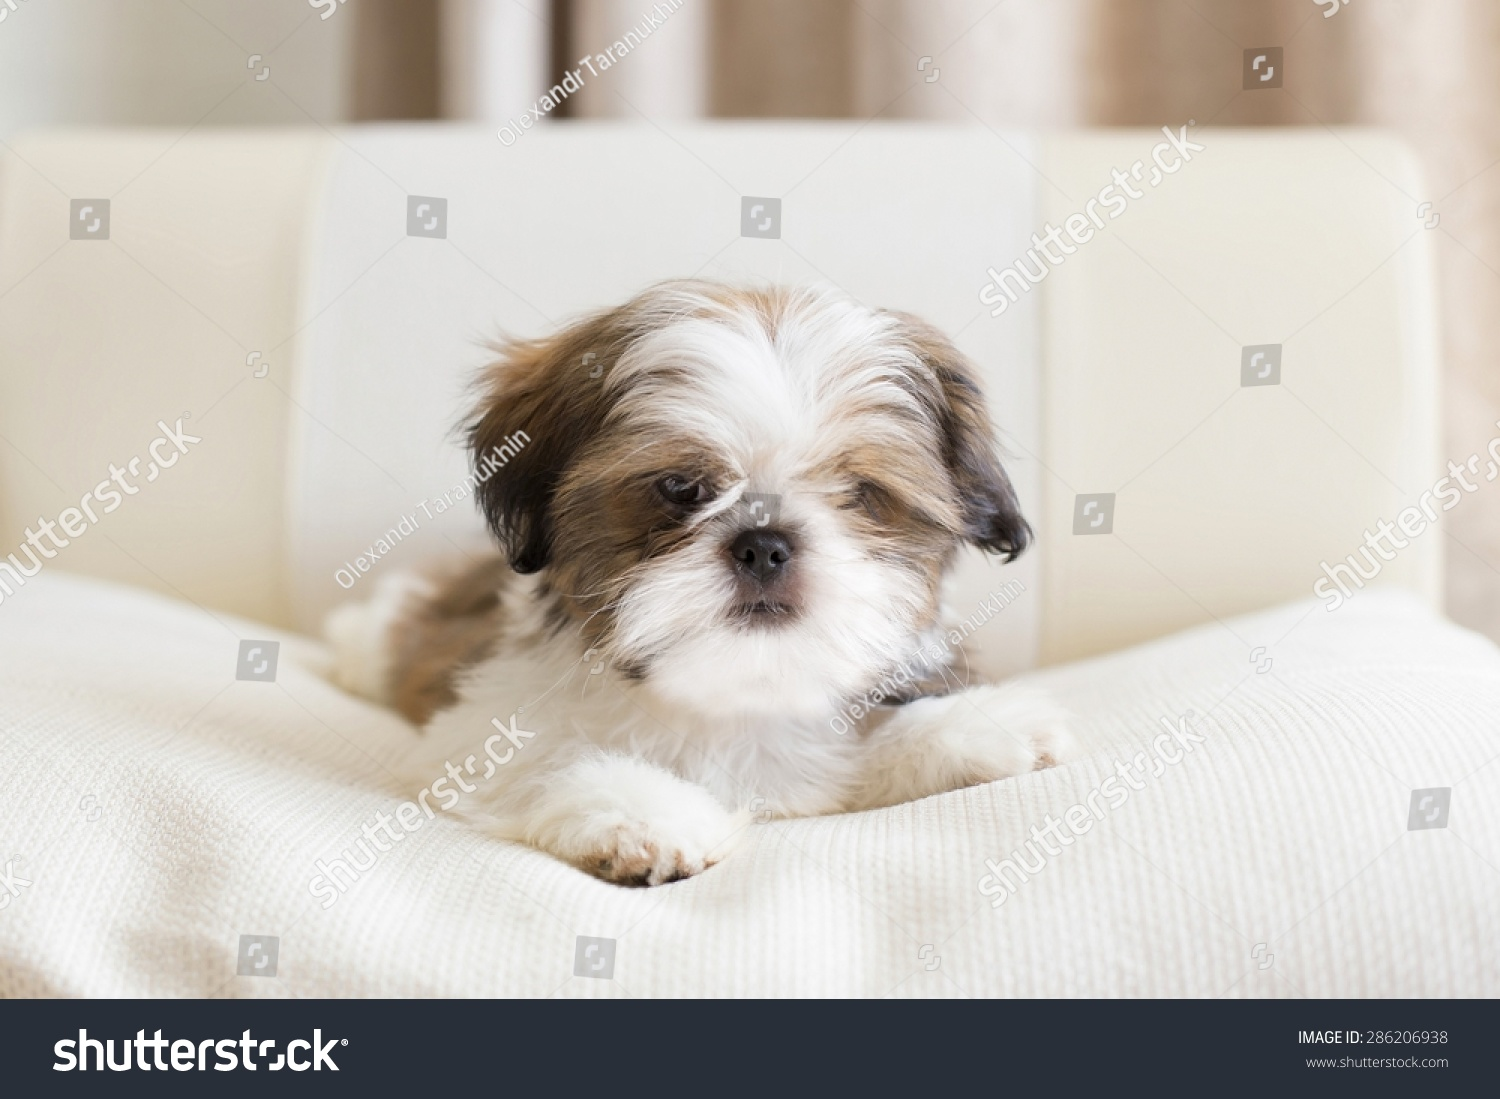 Lovely Colored Shih Tzu Puppy Posing Stock Photo Edit Now 286206938